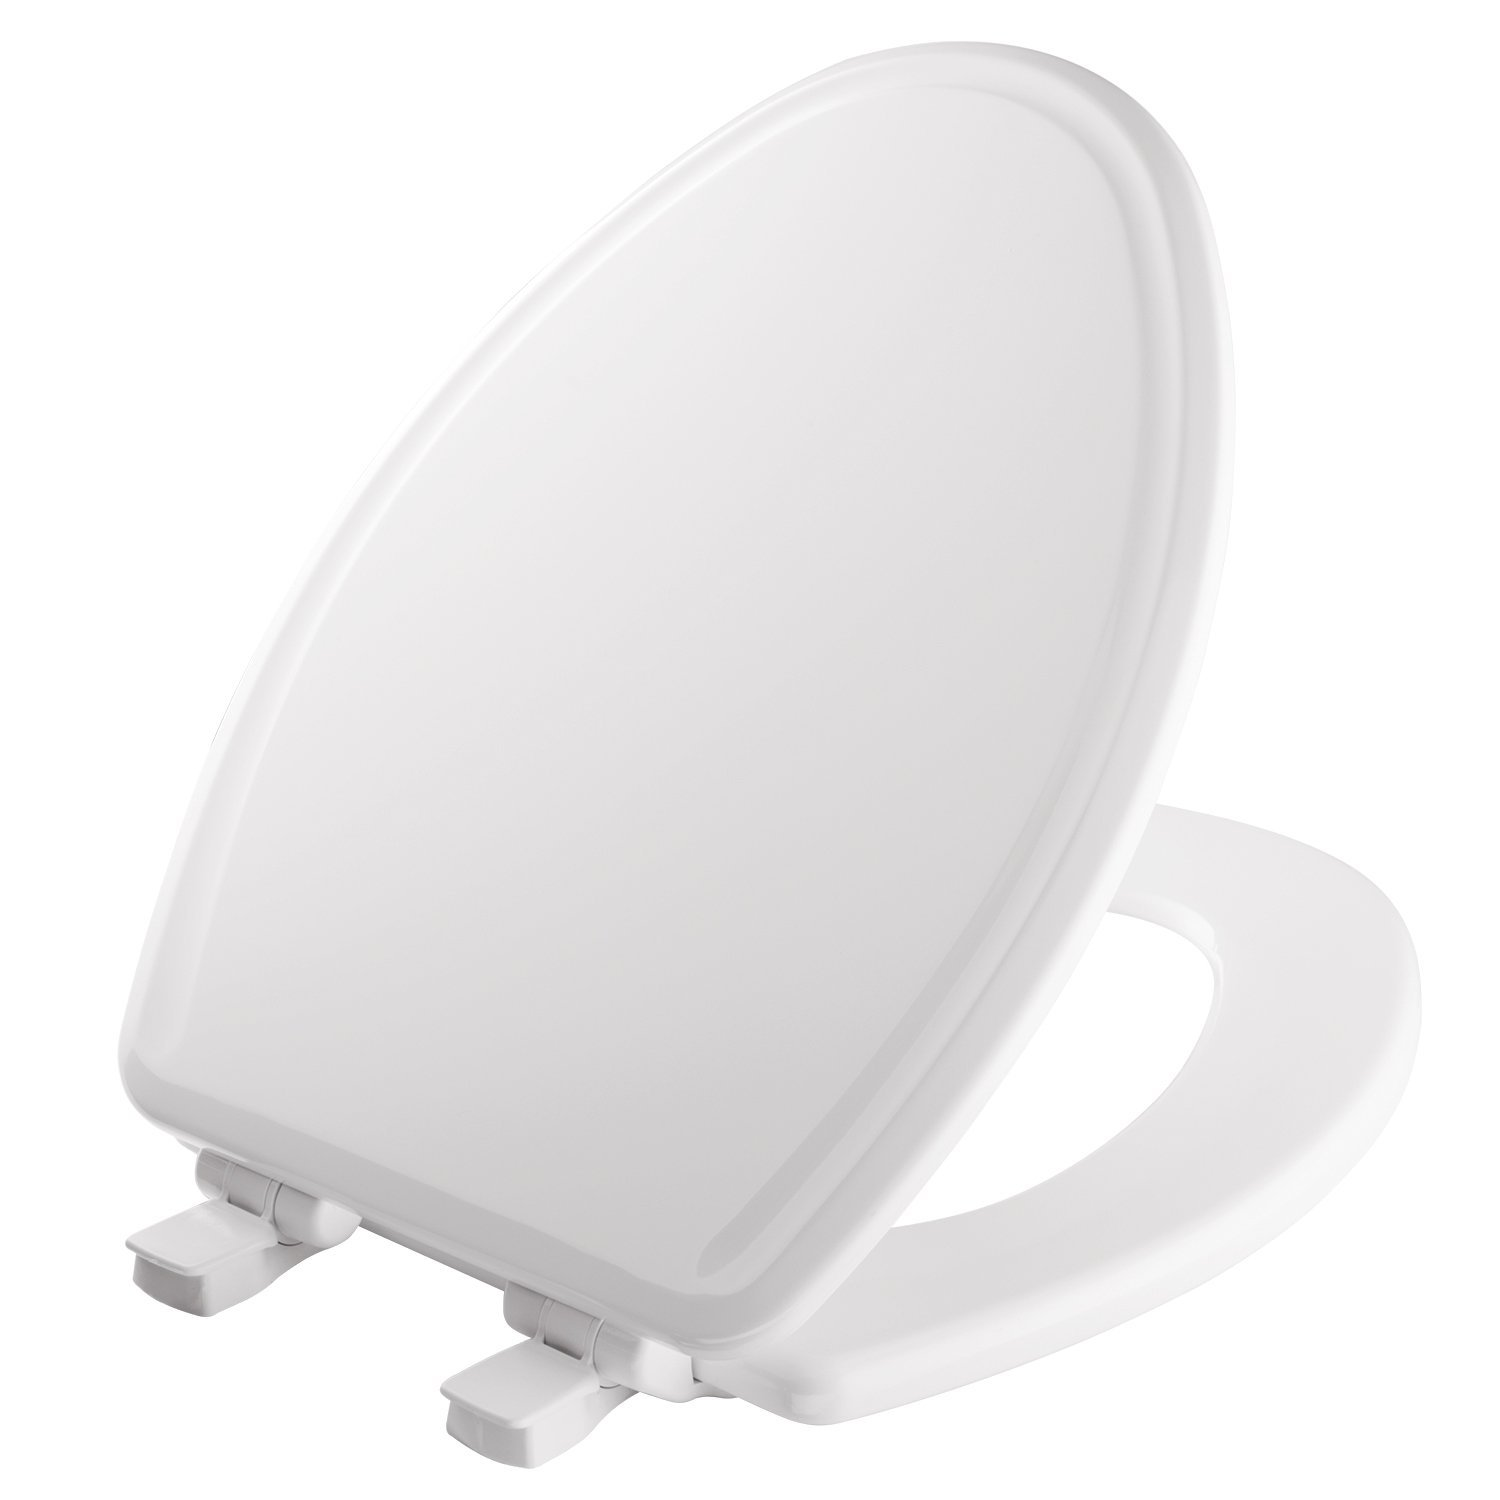 Mayfair 148SLOWA 000/1848SLOWA 000 Slow-Close Molded Wood Toilet Seat featuring Whisper-Close, Easy Clean & Change Hinges and STA-TITE Seat Fastening System, Elongated, White